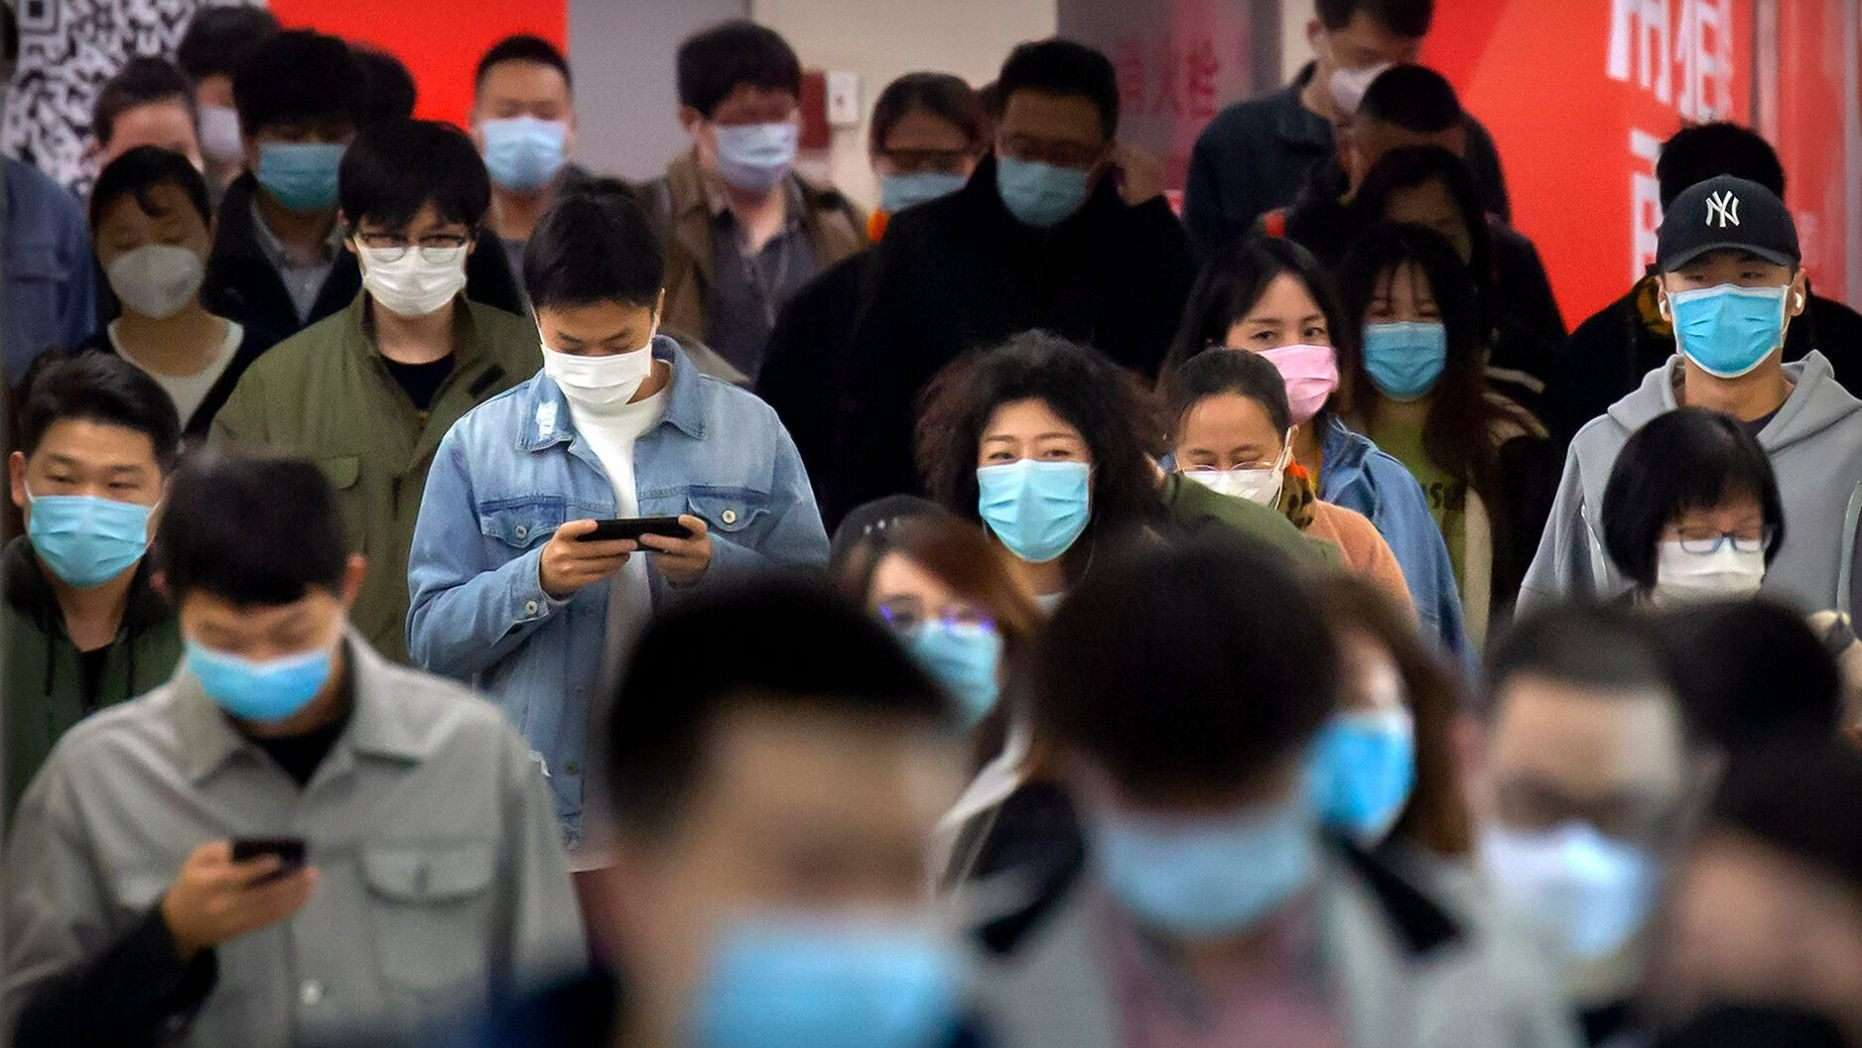 """Commuters wear face masks to protect against the spread of new coronavirus as they walk through a subway station in Beijing, Thursday, April 9, 2020. China's National Health Commission on Thursday reported dozens of new COVID-19 cases, including most of which it says are imported infections in recent arrivals from abroad and two """"native"""" cases in the southern province of Guangdong. (AP Photo/Mark Schiefelbein)"""